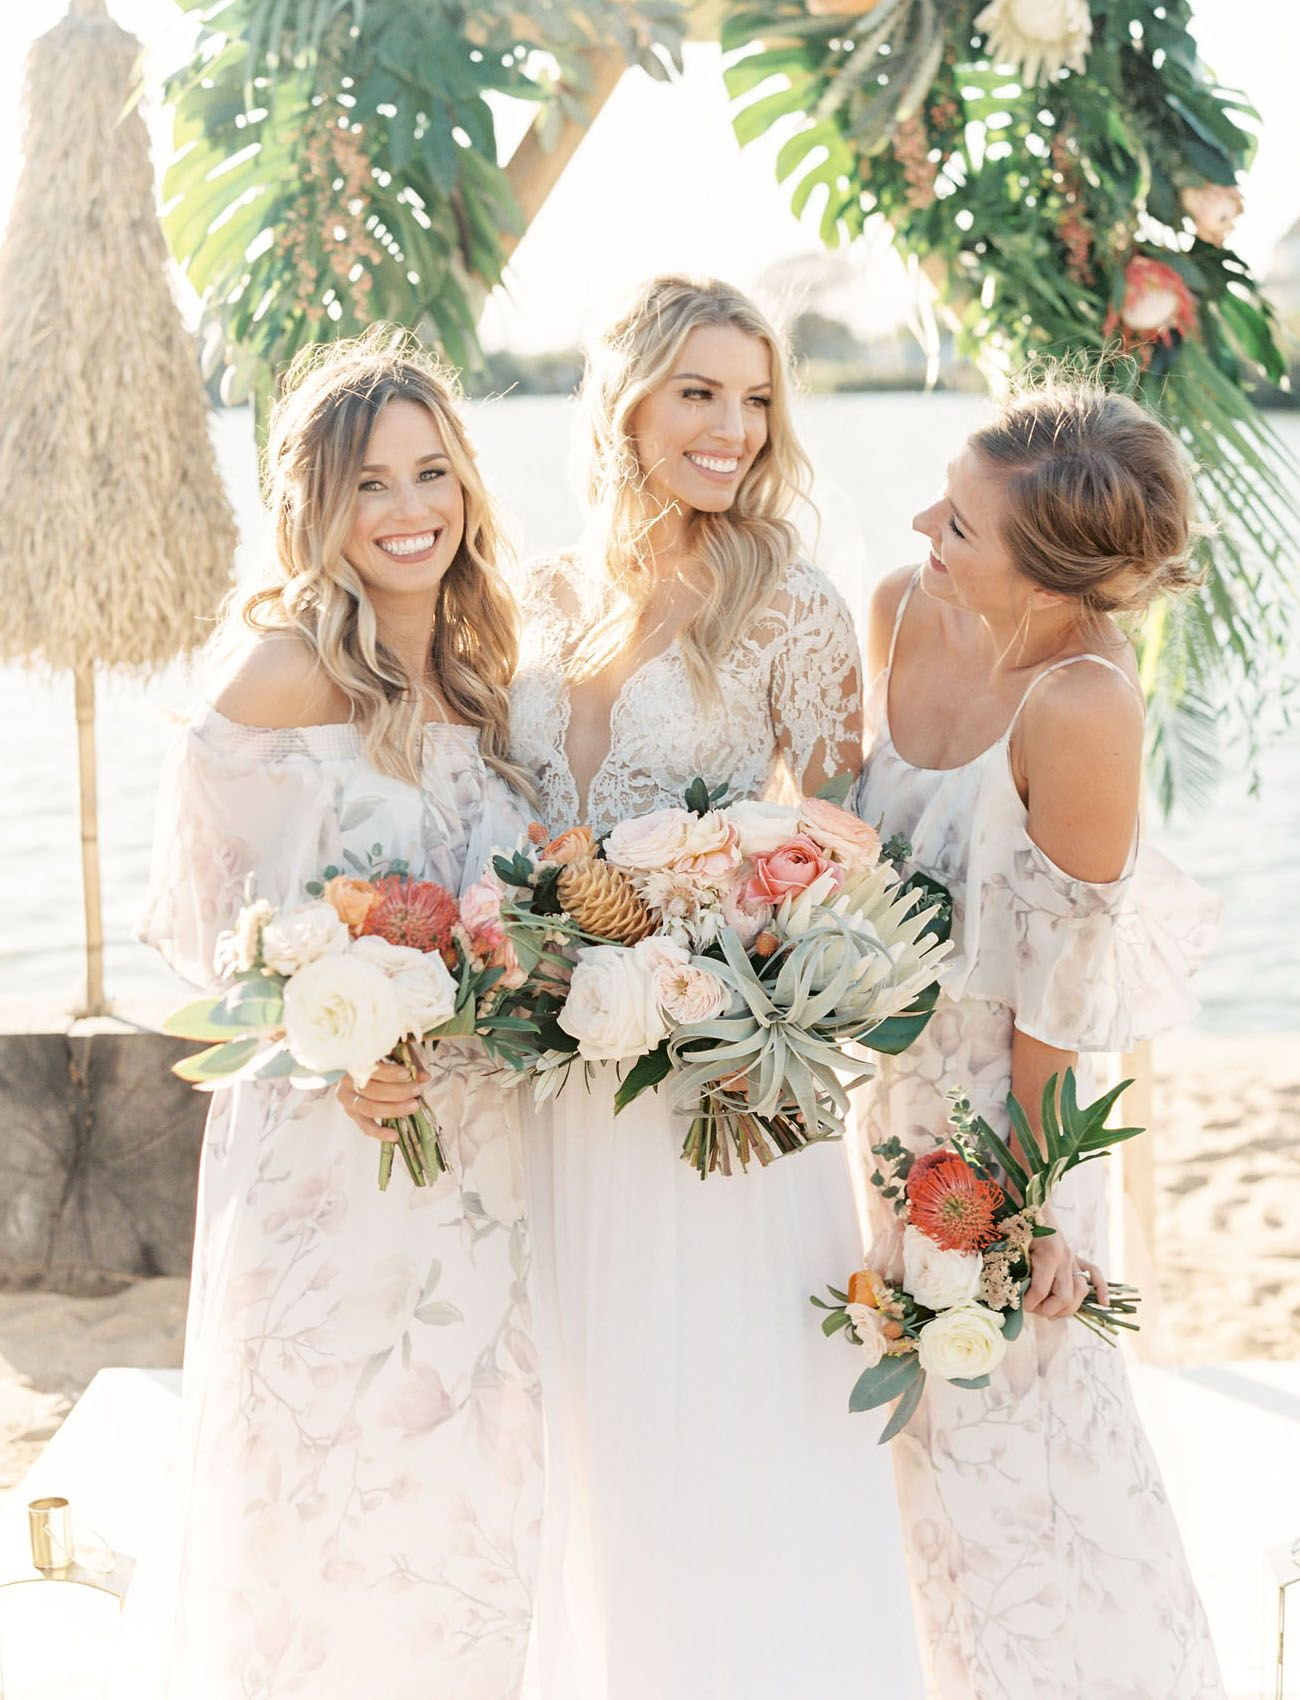 This wedding at the surf lodge is filled with tropical boho charm